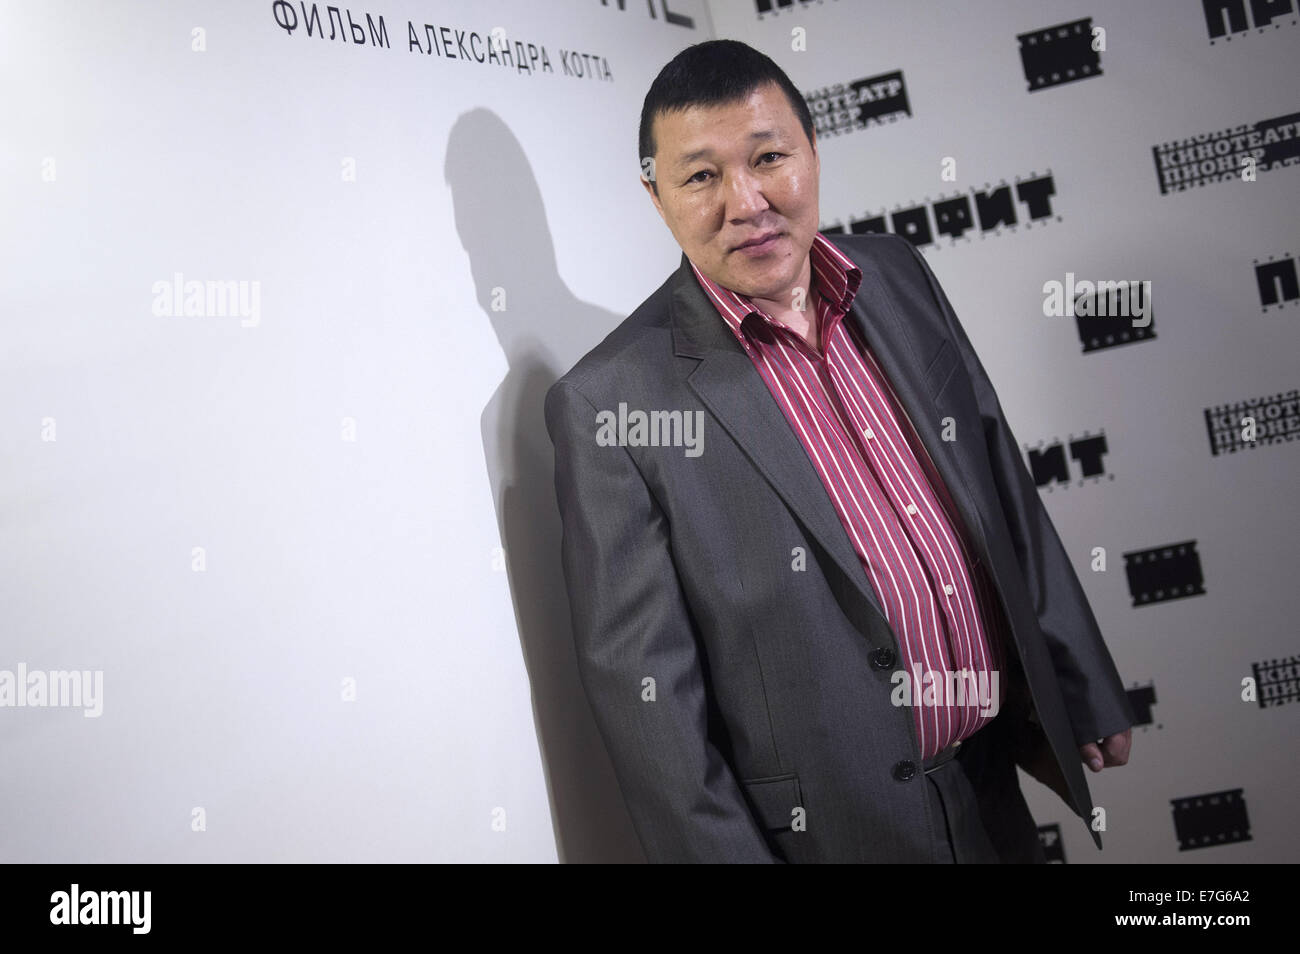 """Moscow, Russia. 17th Sep, 2014. Actor Karim Pakachakov attends """"Trial"""" film premiere party at Pioner cinema. Credit: - Stock Image"""